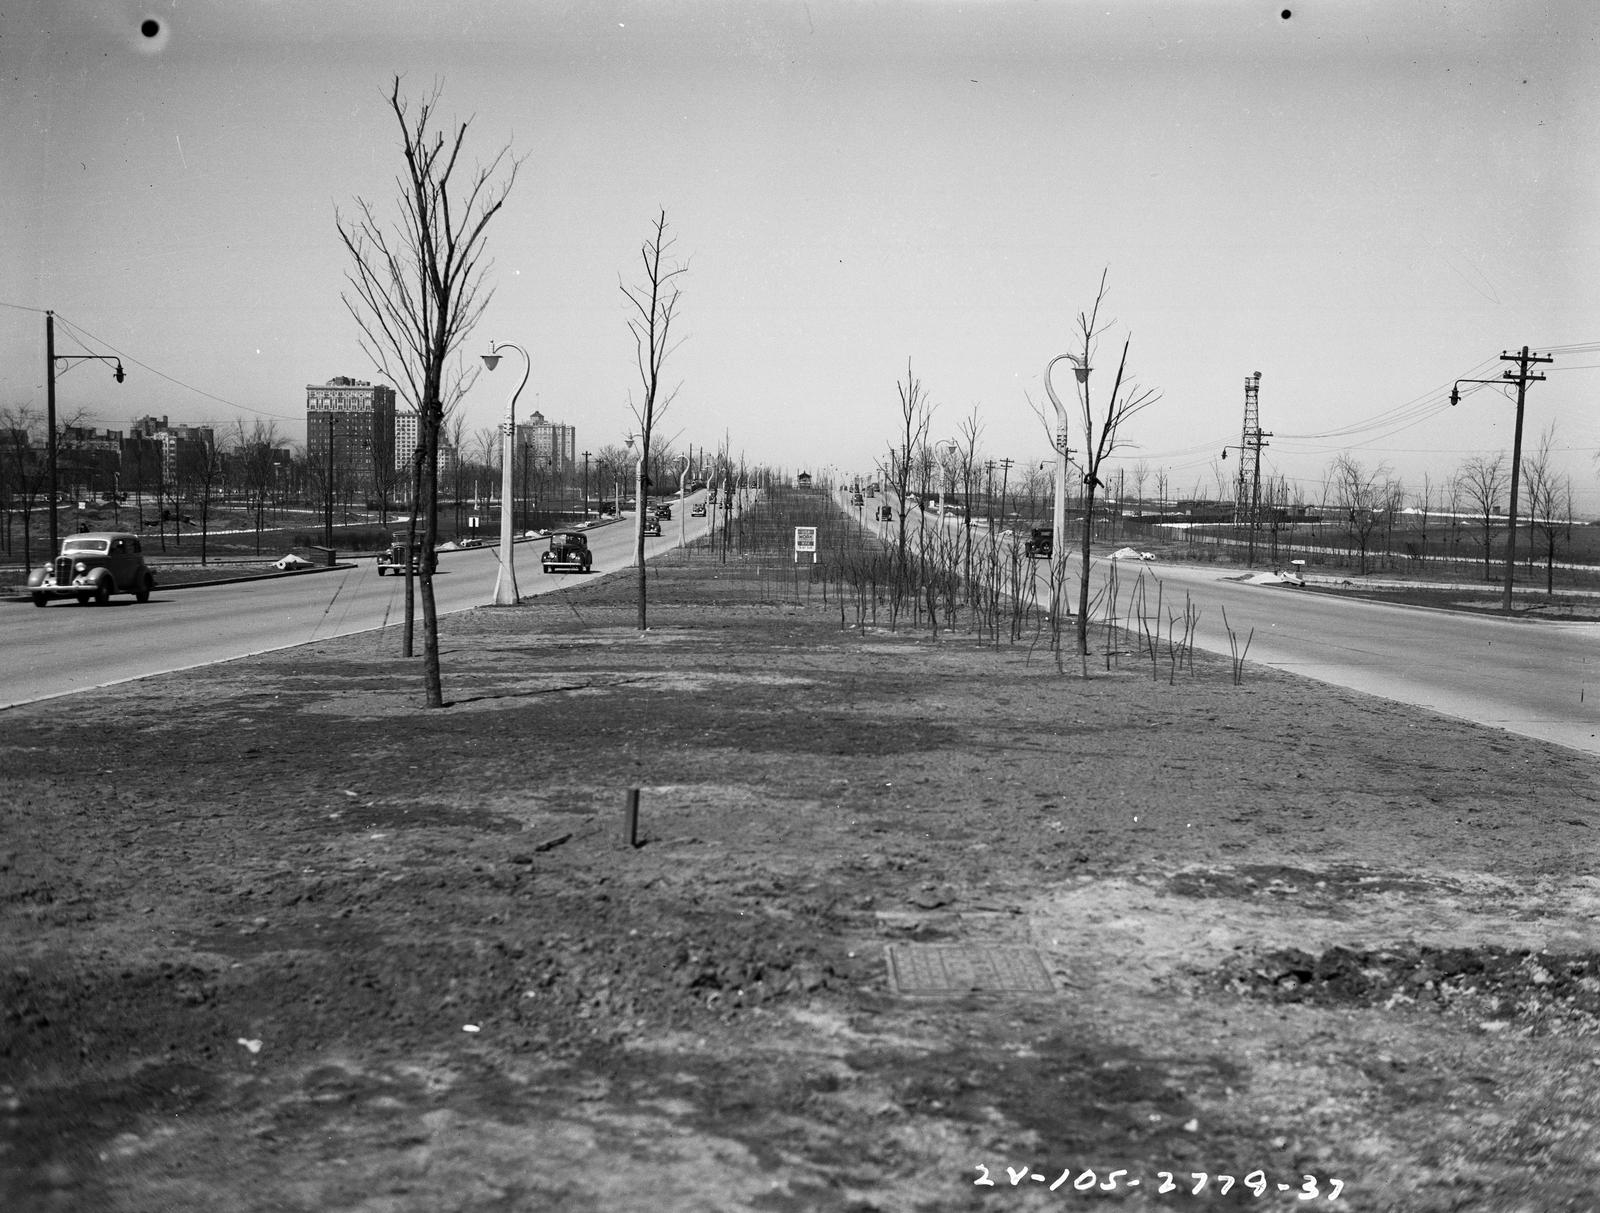 Traffic Intersection at Lake Shore Drive and Wilson Ave (image 03)